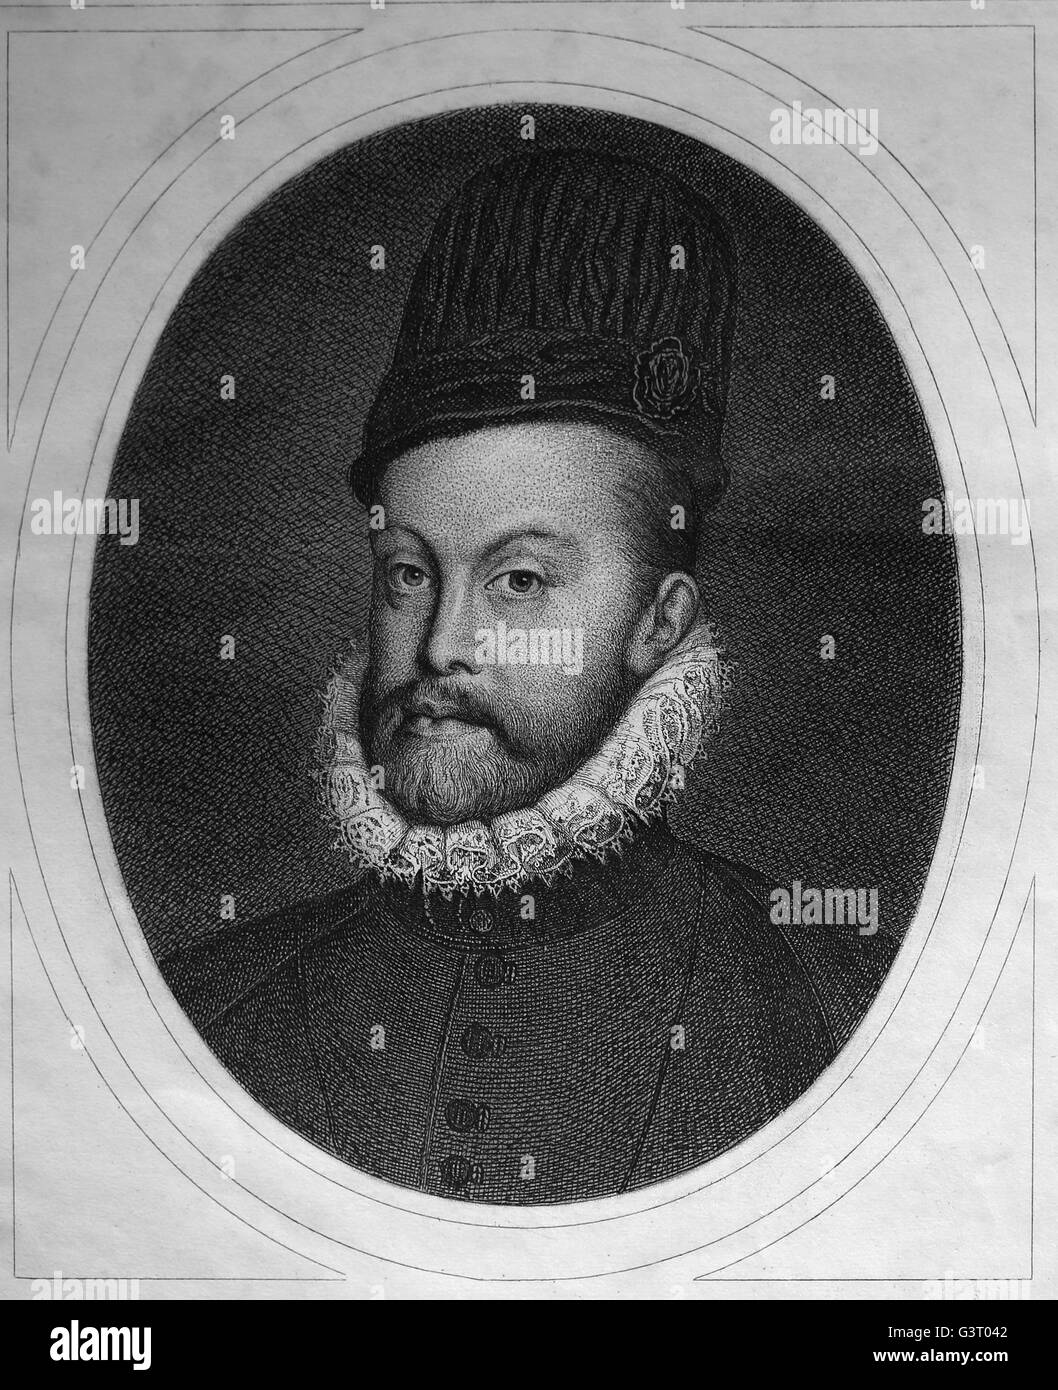 Philip II (1527-1598). King of Spain and Naples. Portrait. Engraving. General History of Spain, by Modesto Lafuente, Stock Photo